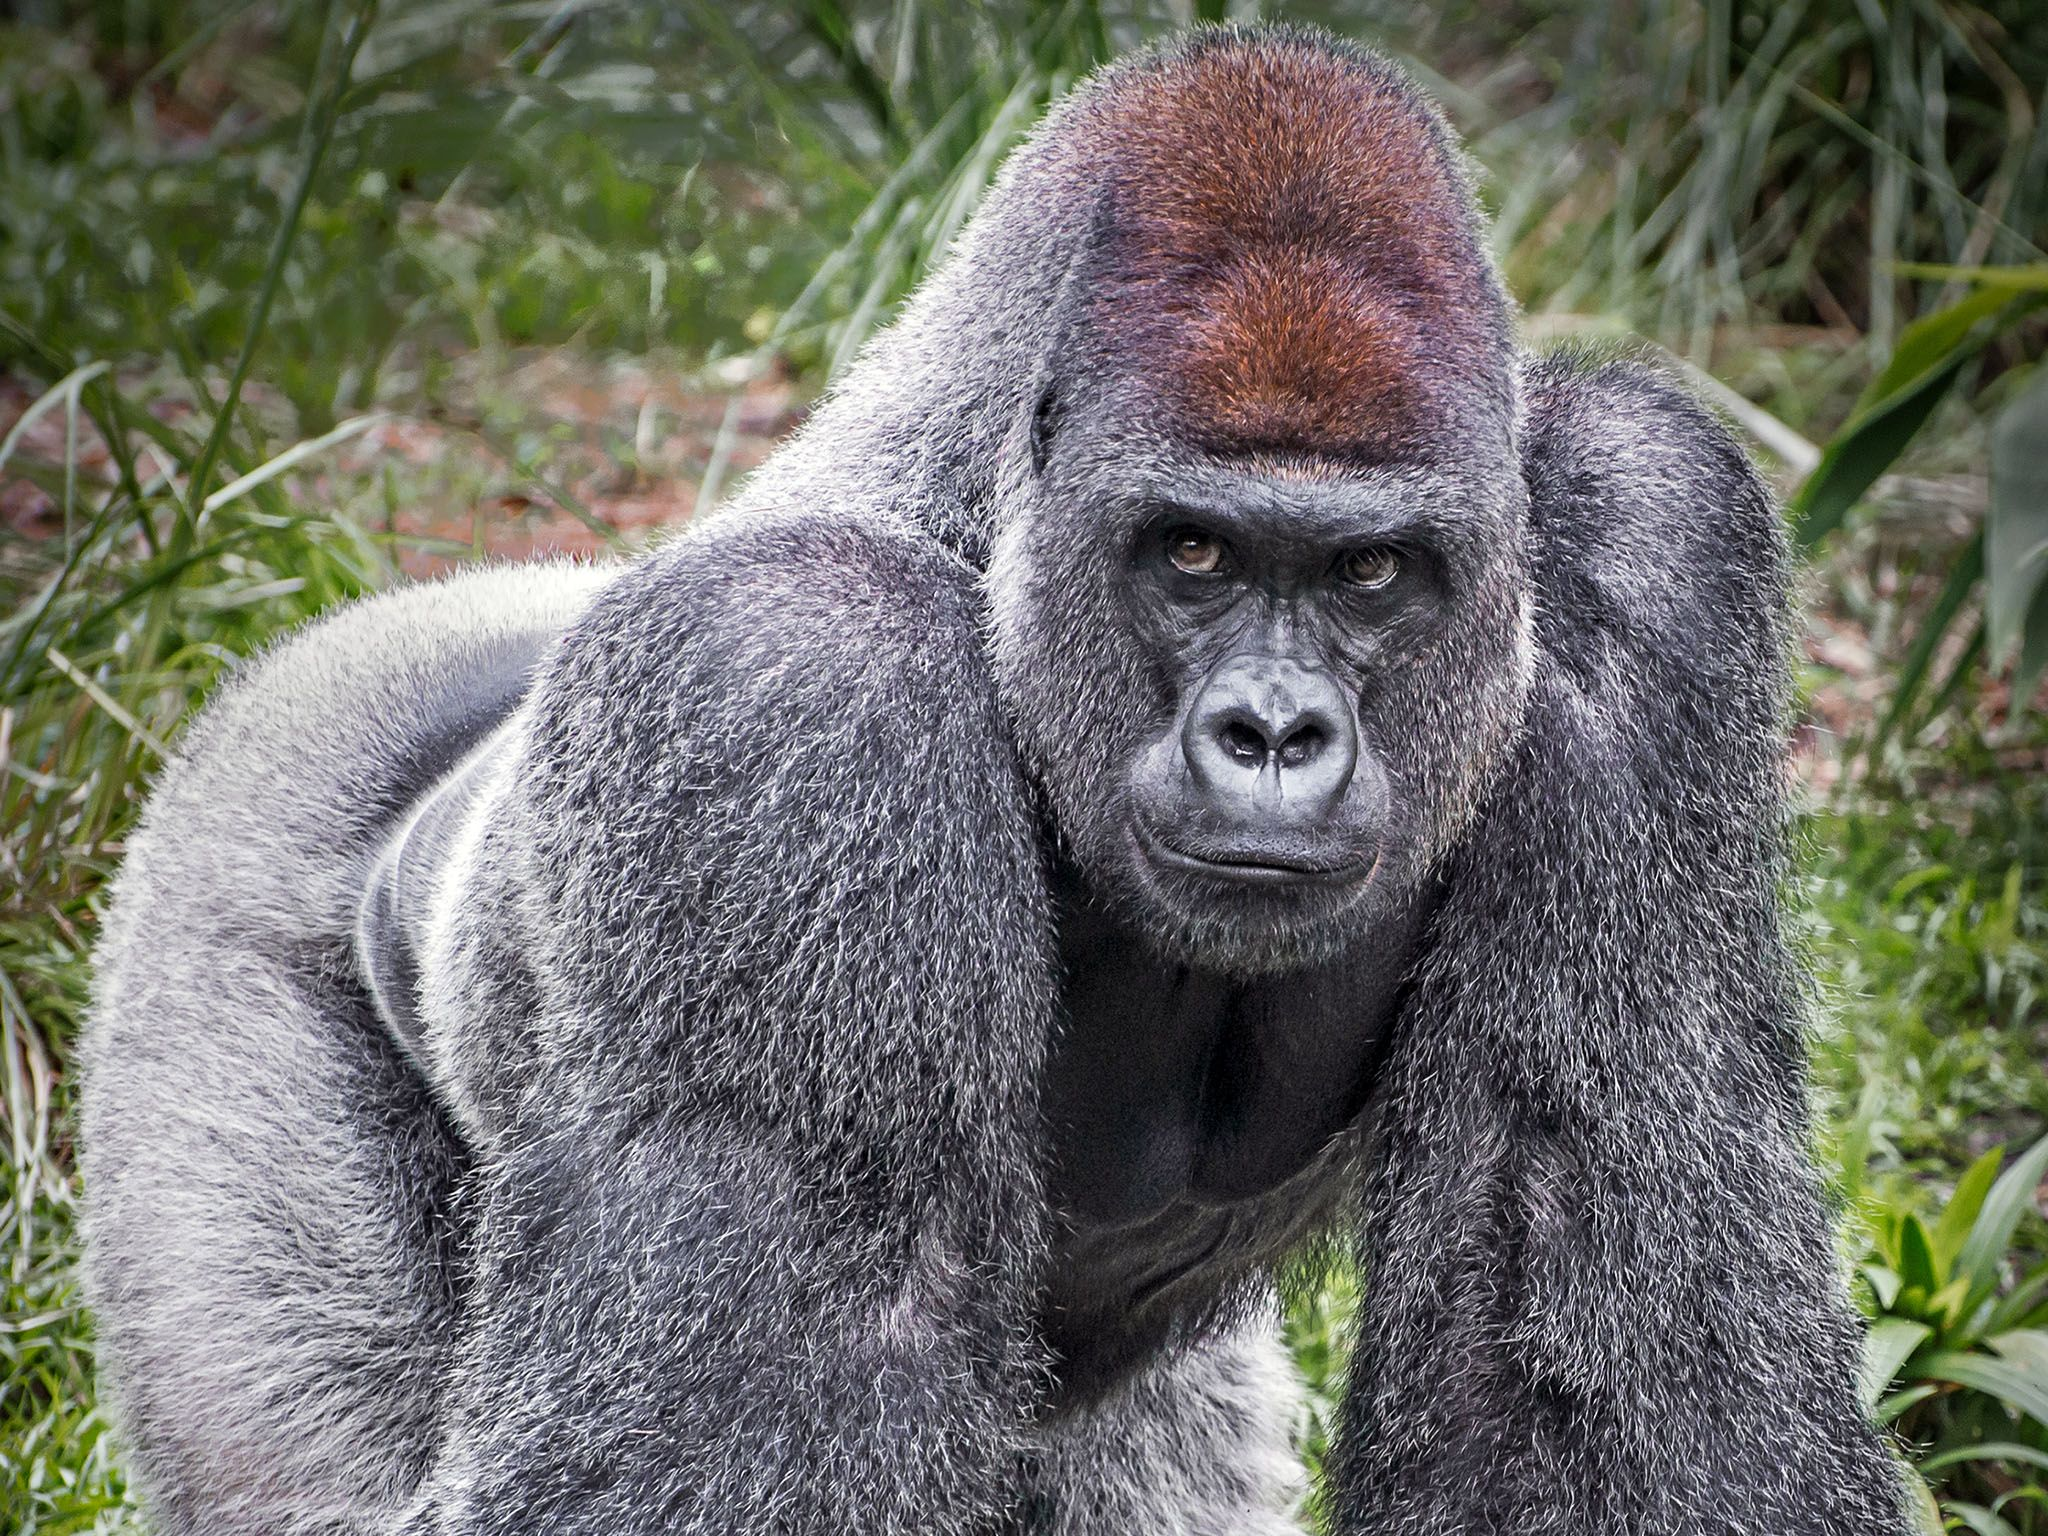 The Silverback gorilla gets its name from a silver patch of fur that grows on the backs of adult... [Photo of the day - April 2016]